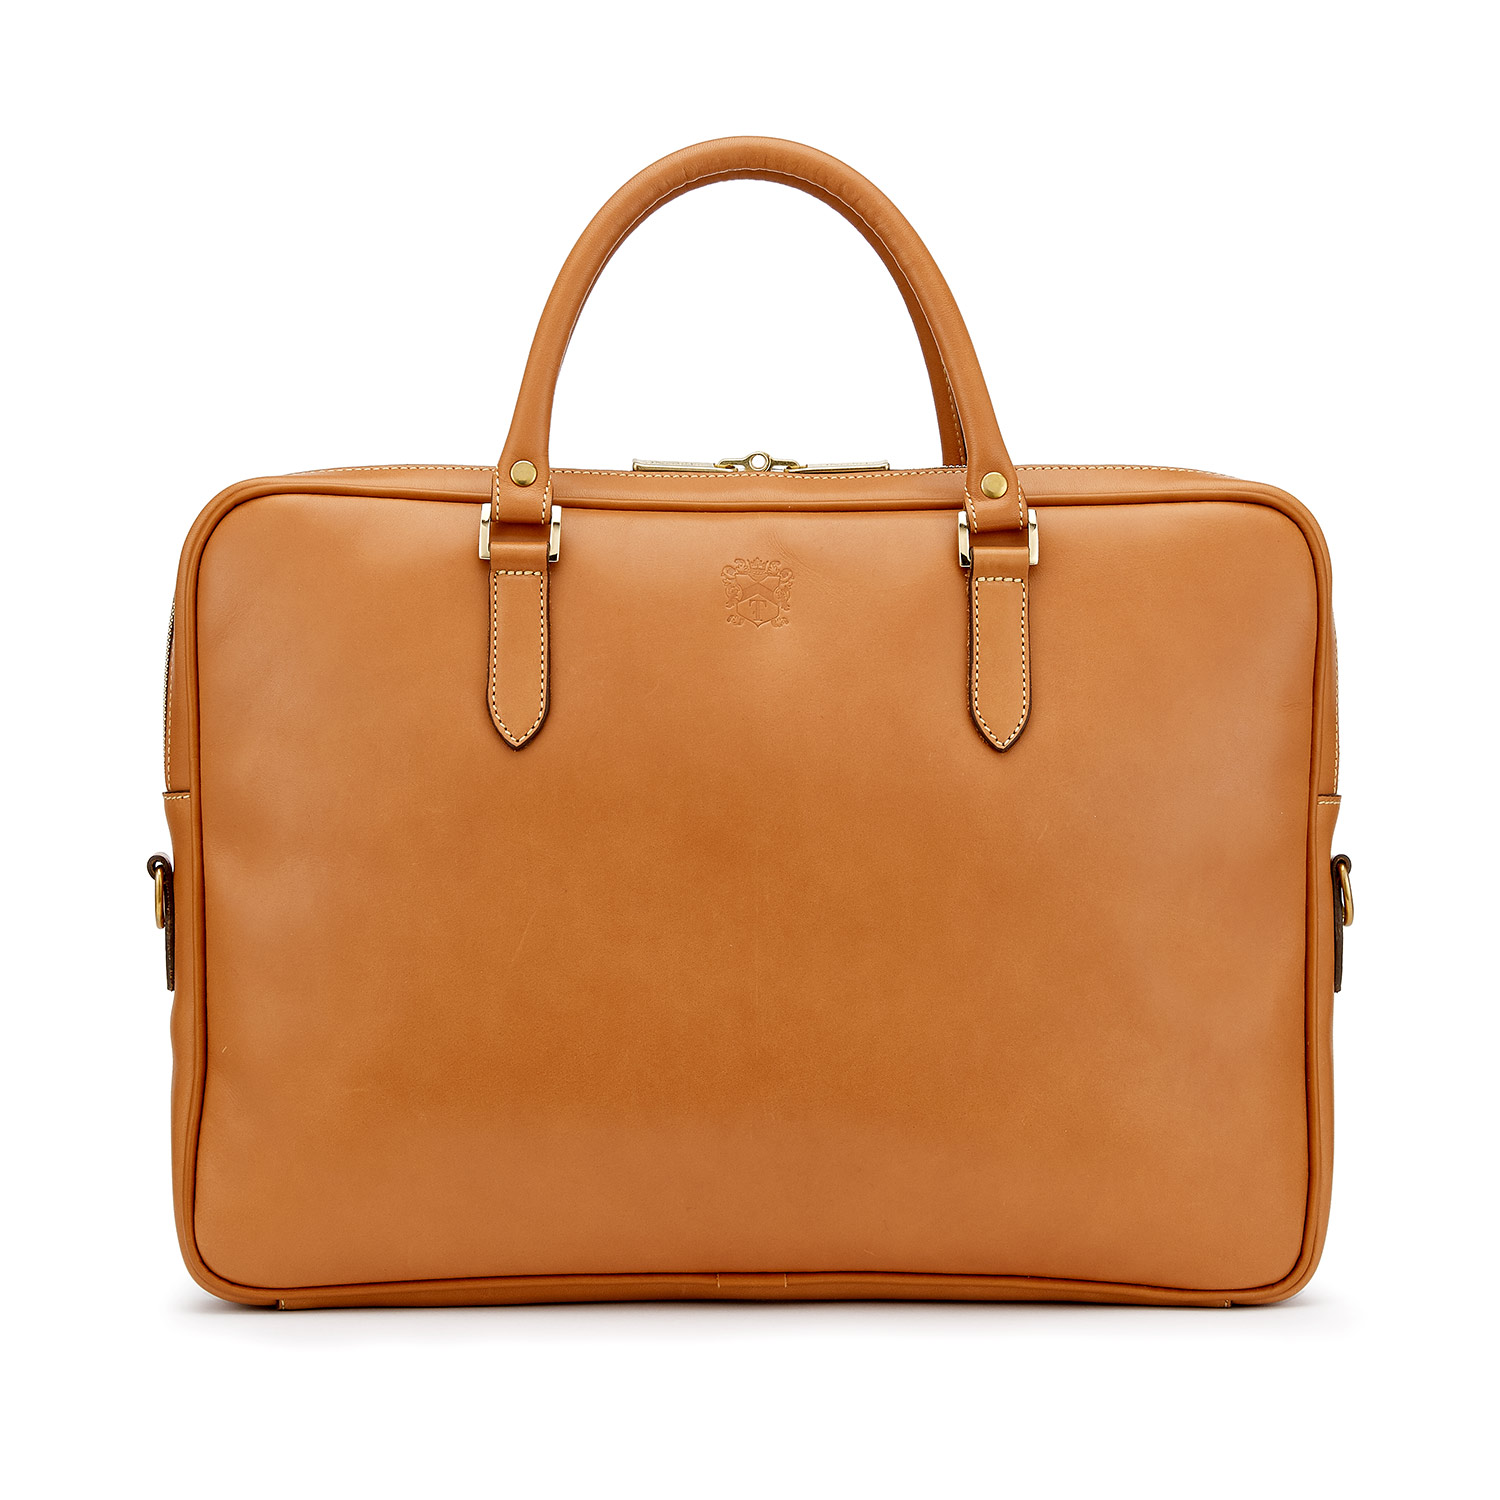 Tusting Piccadilly Leather Briefcase in Tan Front